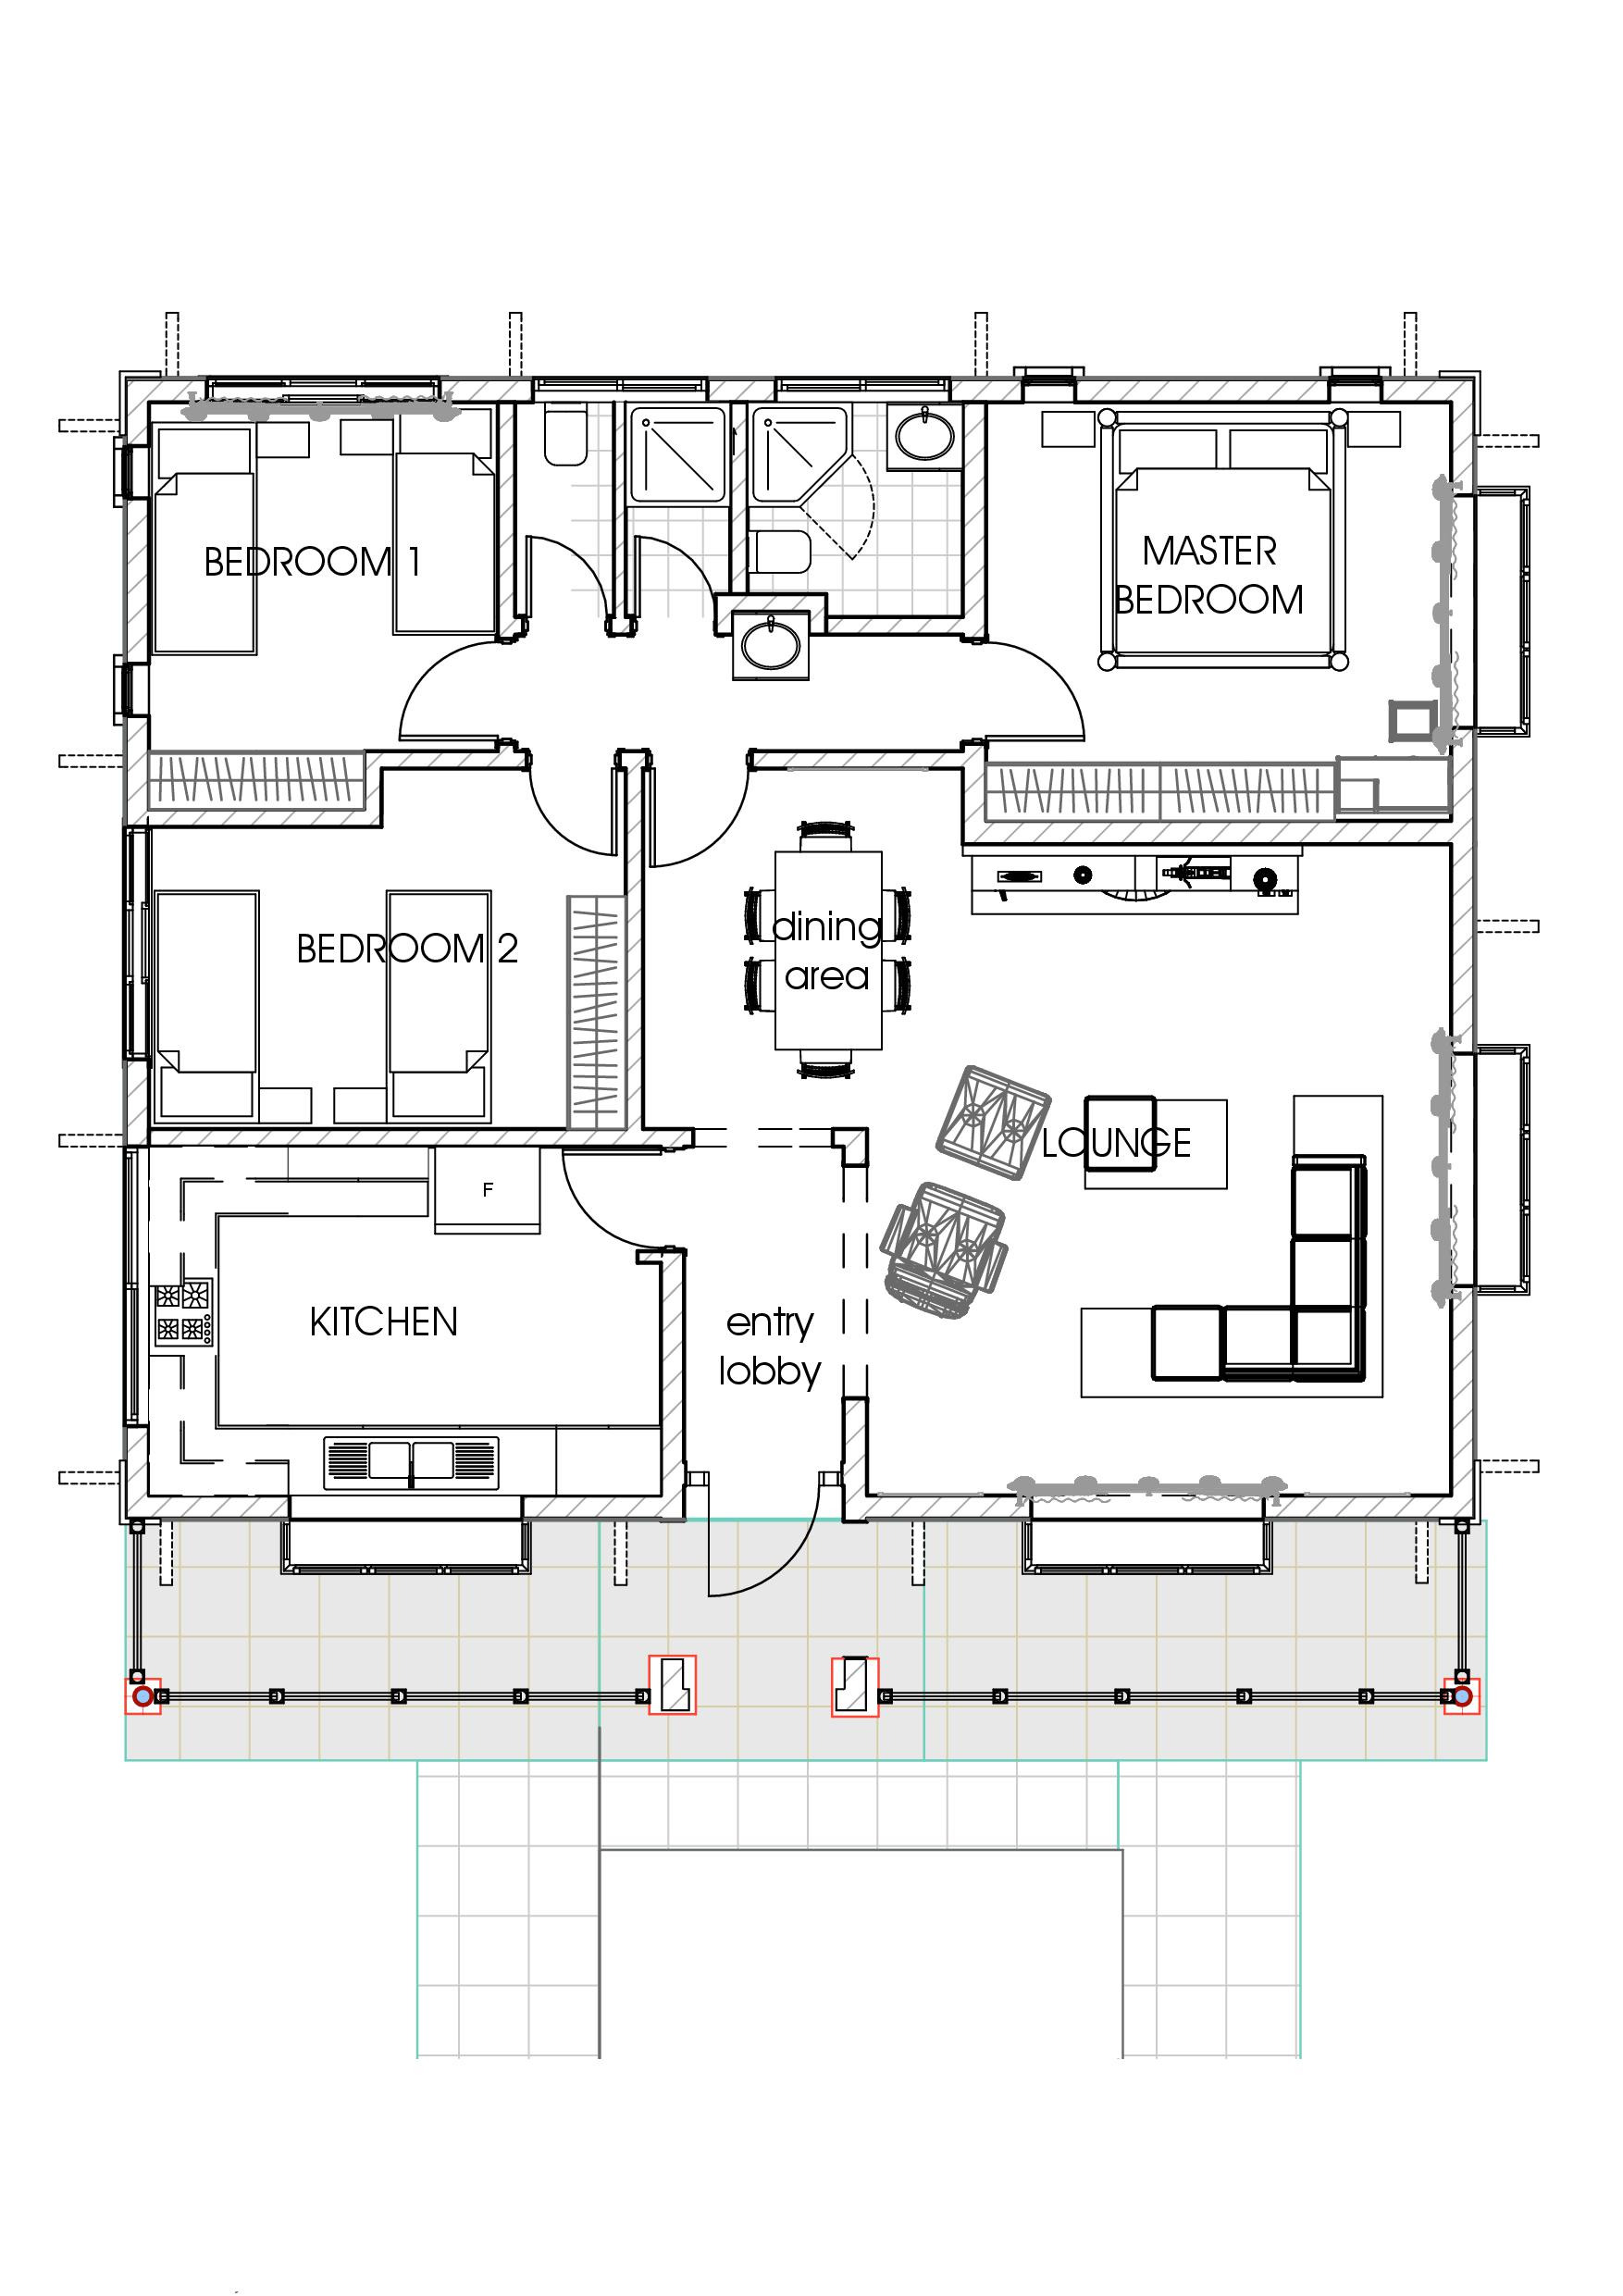 Three Bedroom House Floor Plans Awesome David Chola – Architect – House Plans In Kenya – the Concise